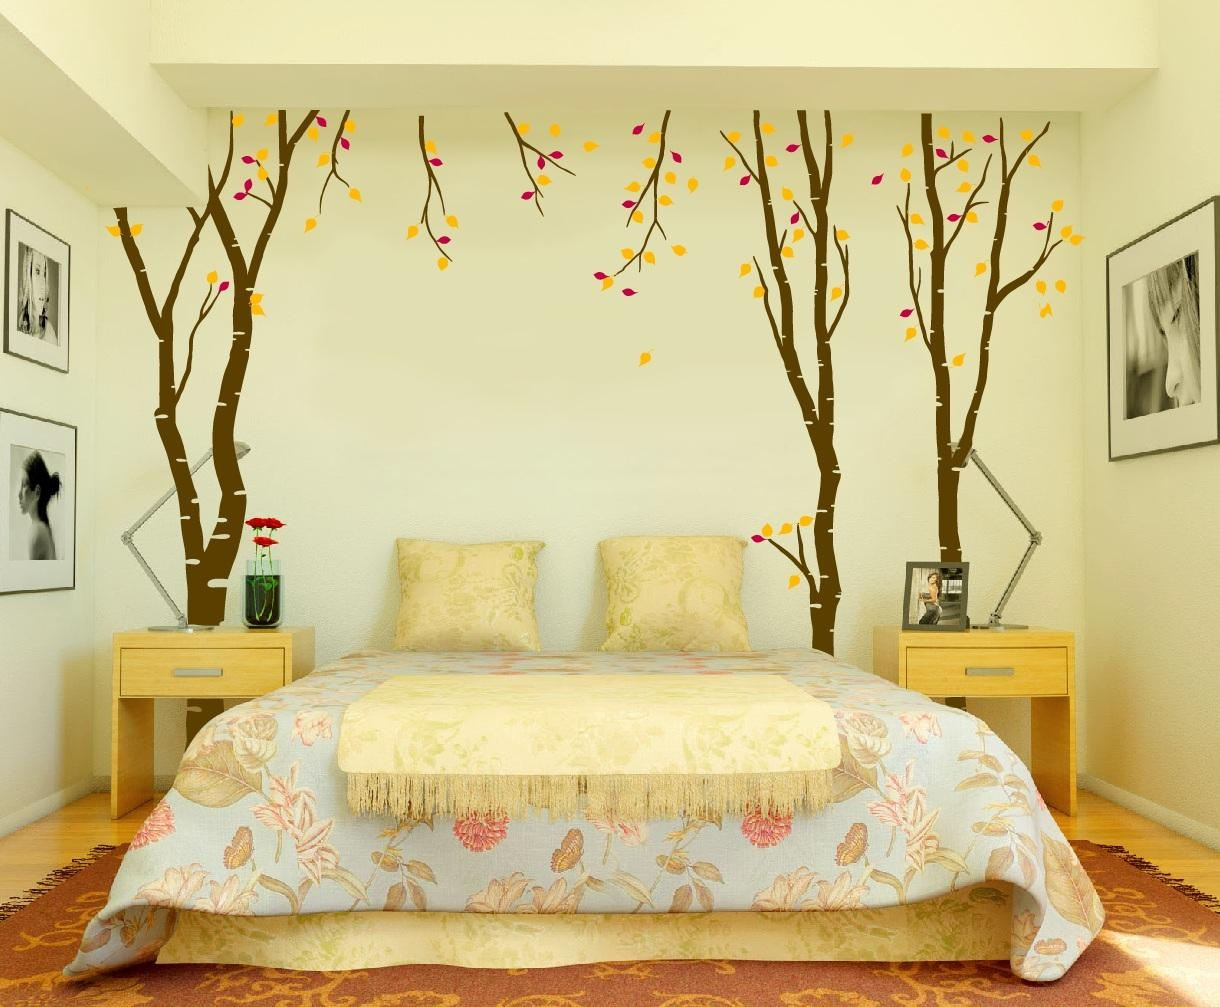 Wall Art Decals For Bedroom (Photos And Video) | Wylielauderhouse Inside Wall Art For Bedrooms (Image 16 of 21)